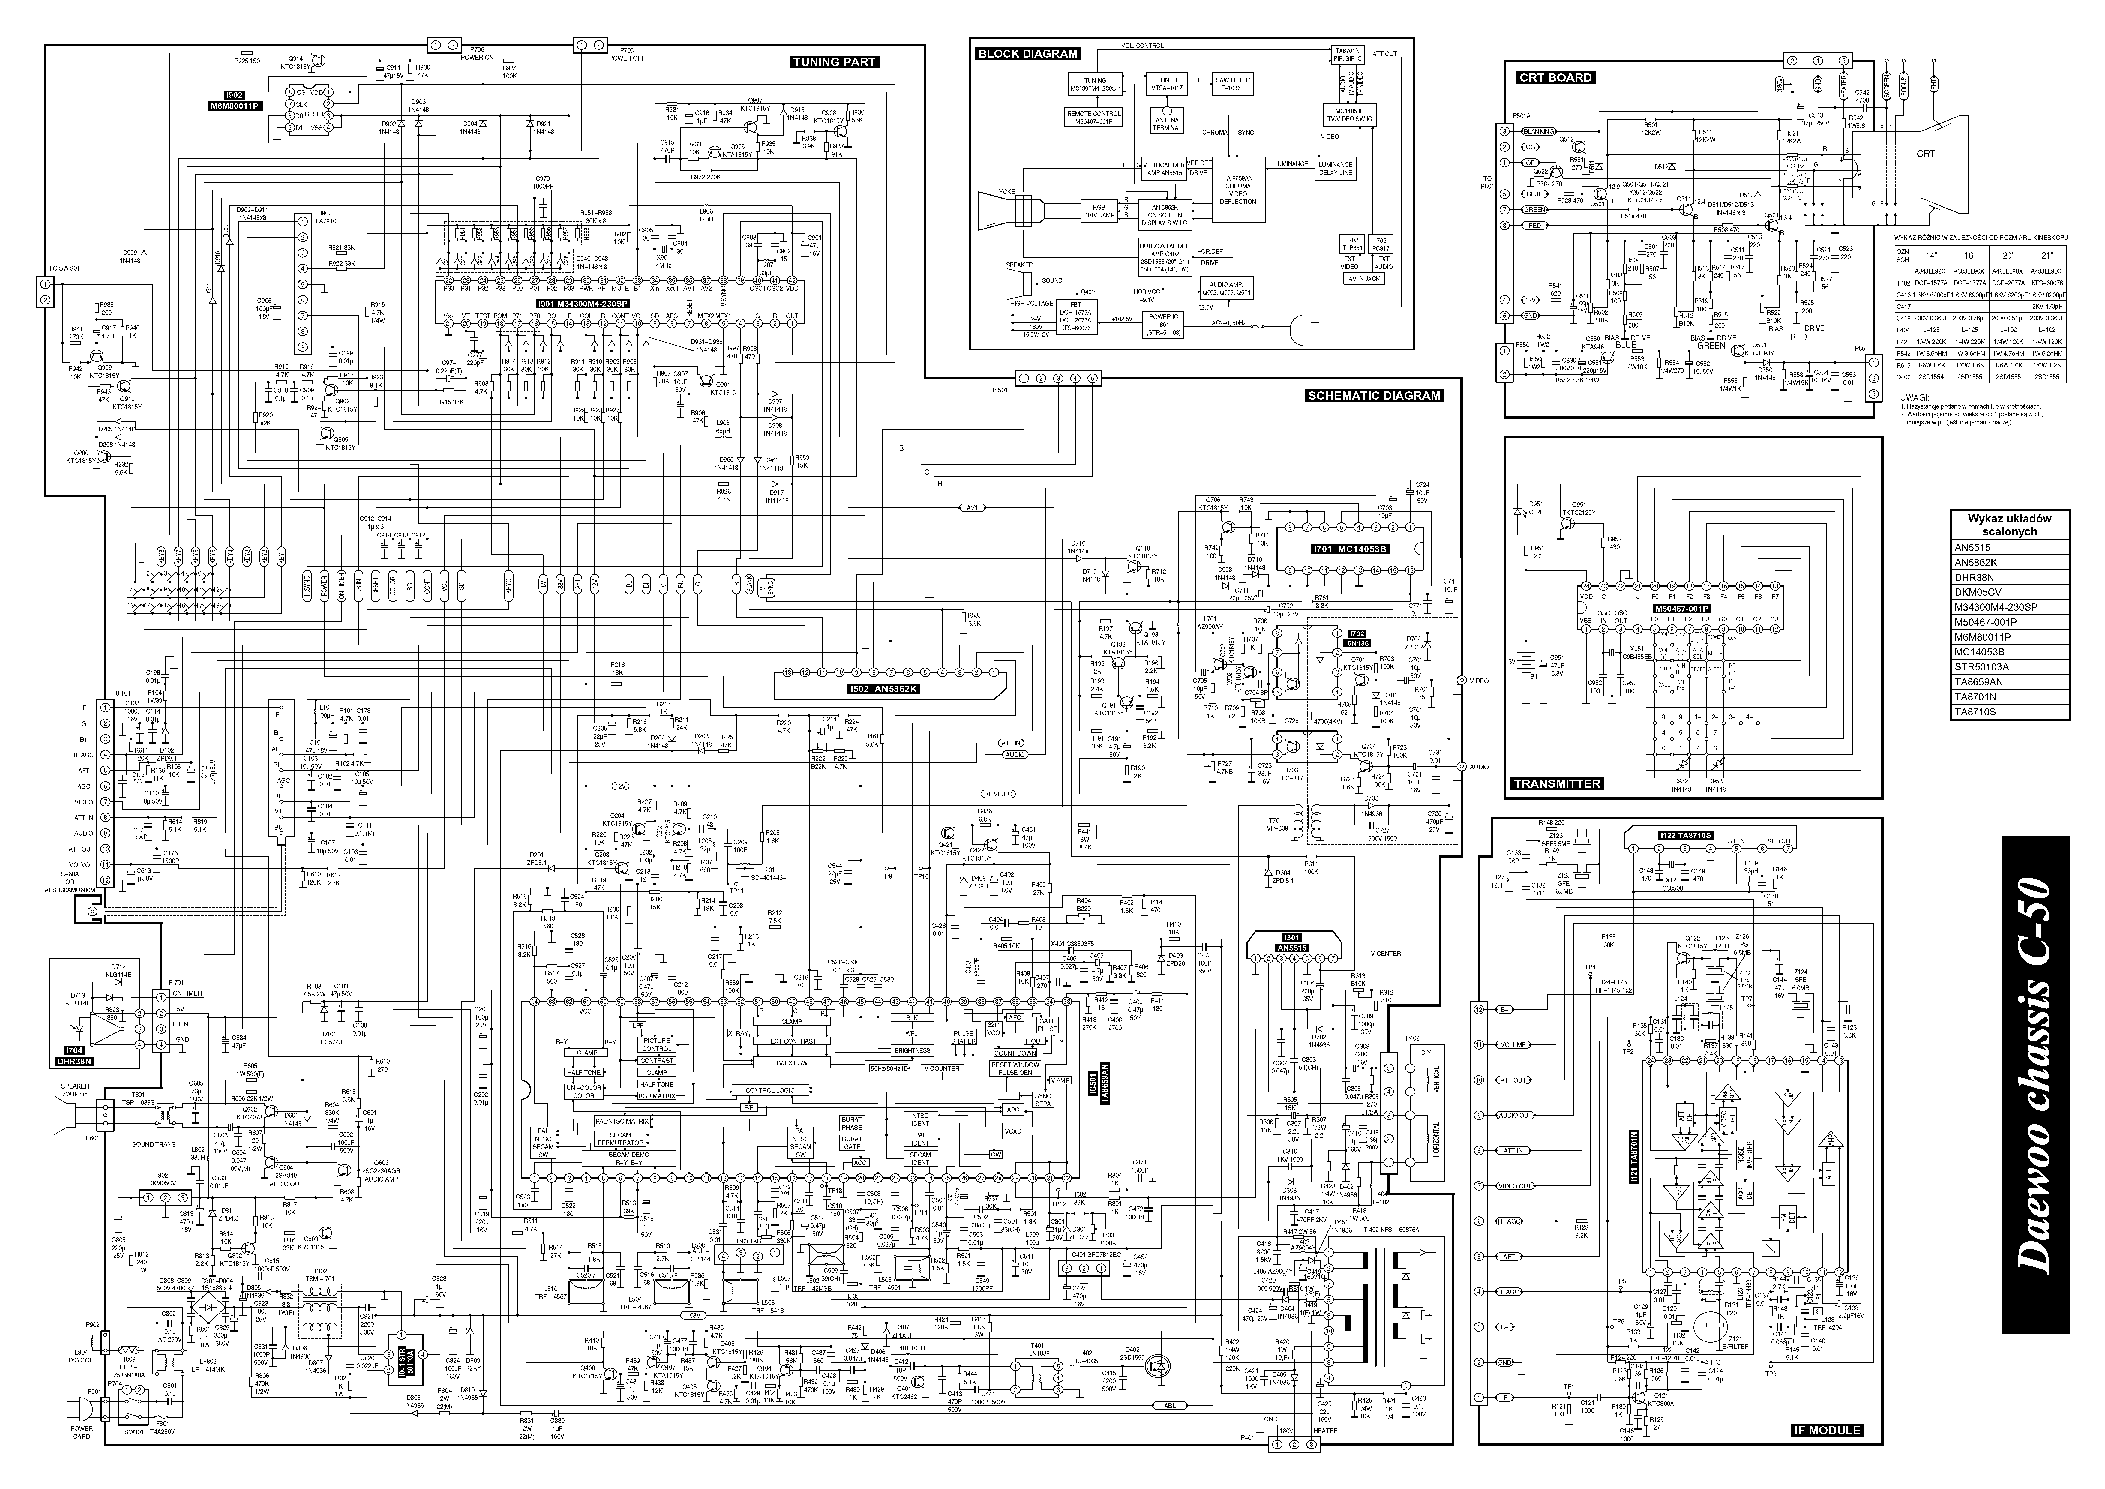 Daewoo Chassis C50 Dmq Sch Service Manual Download